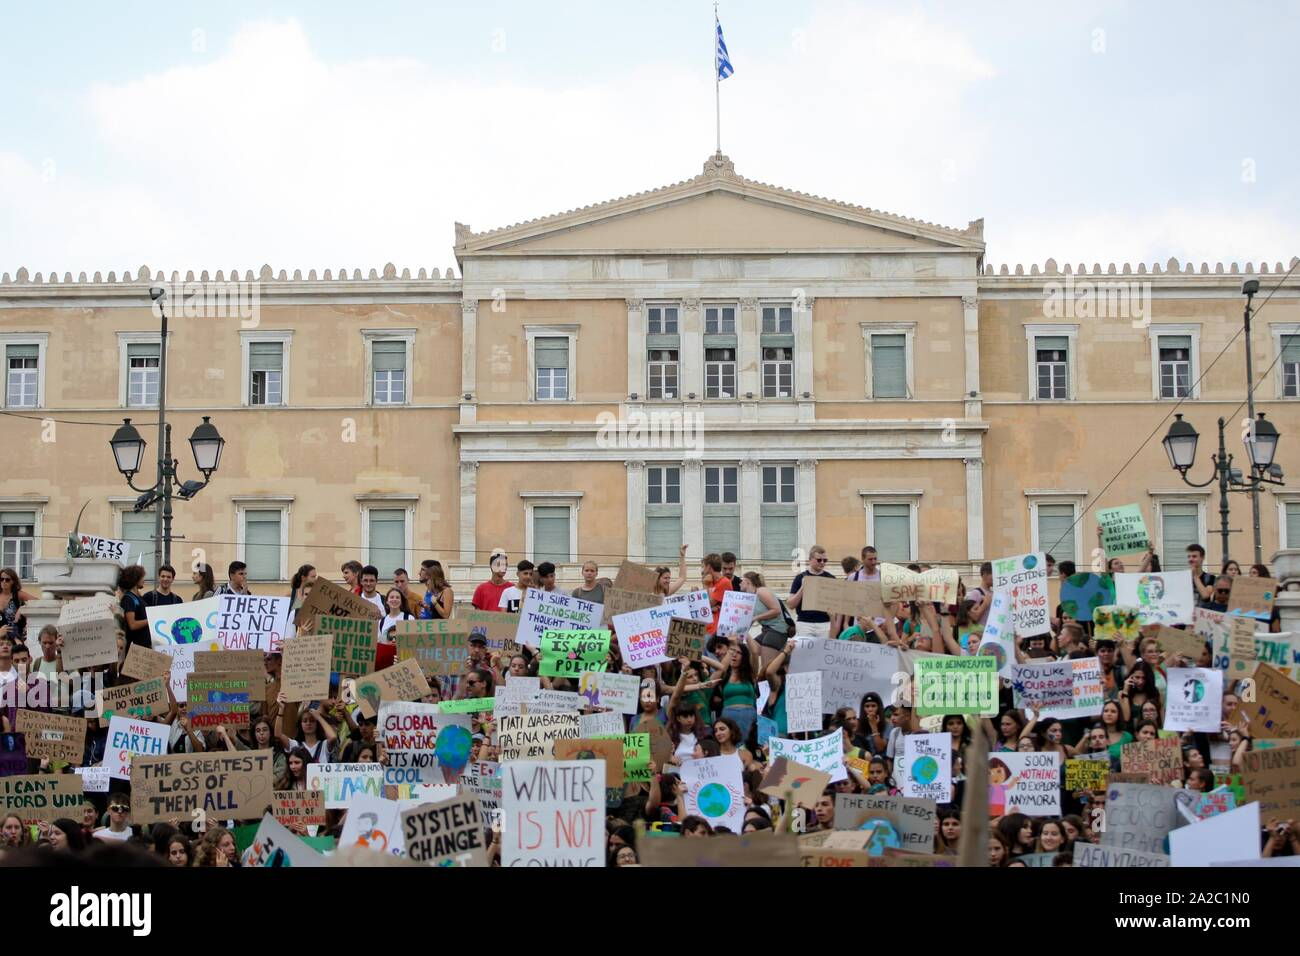 Climate protesters demonstrate in the center of Athens. Protesters around the world joined rallies on Friday as a day of worldwide demonstrations calling for action against climate change began ahead of a U.N. summit in New York. Stock Photo